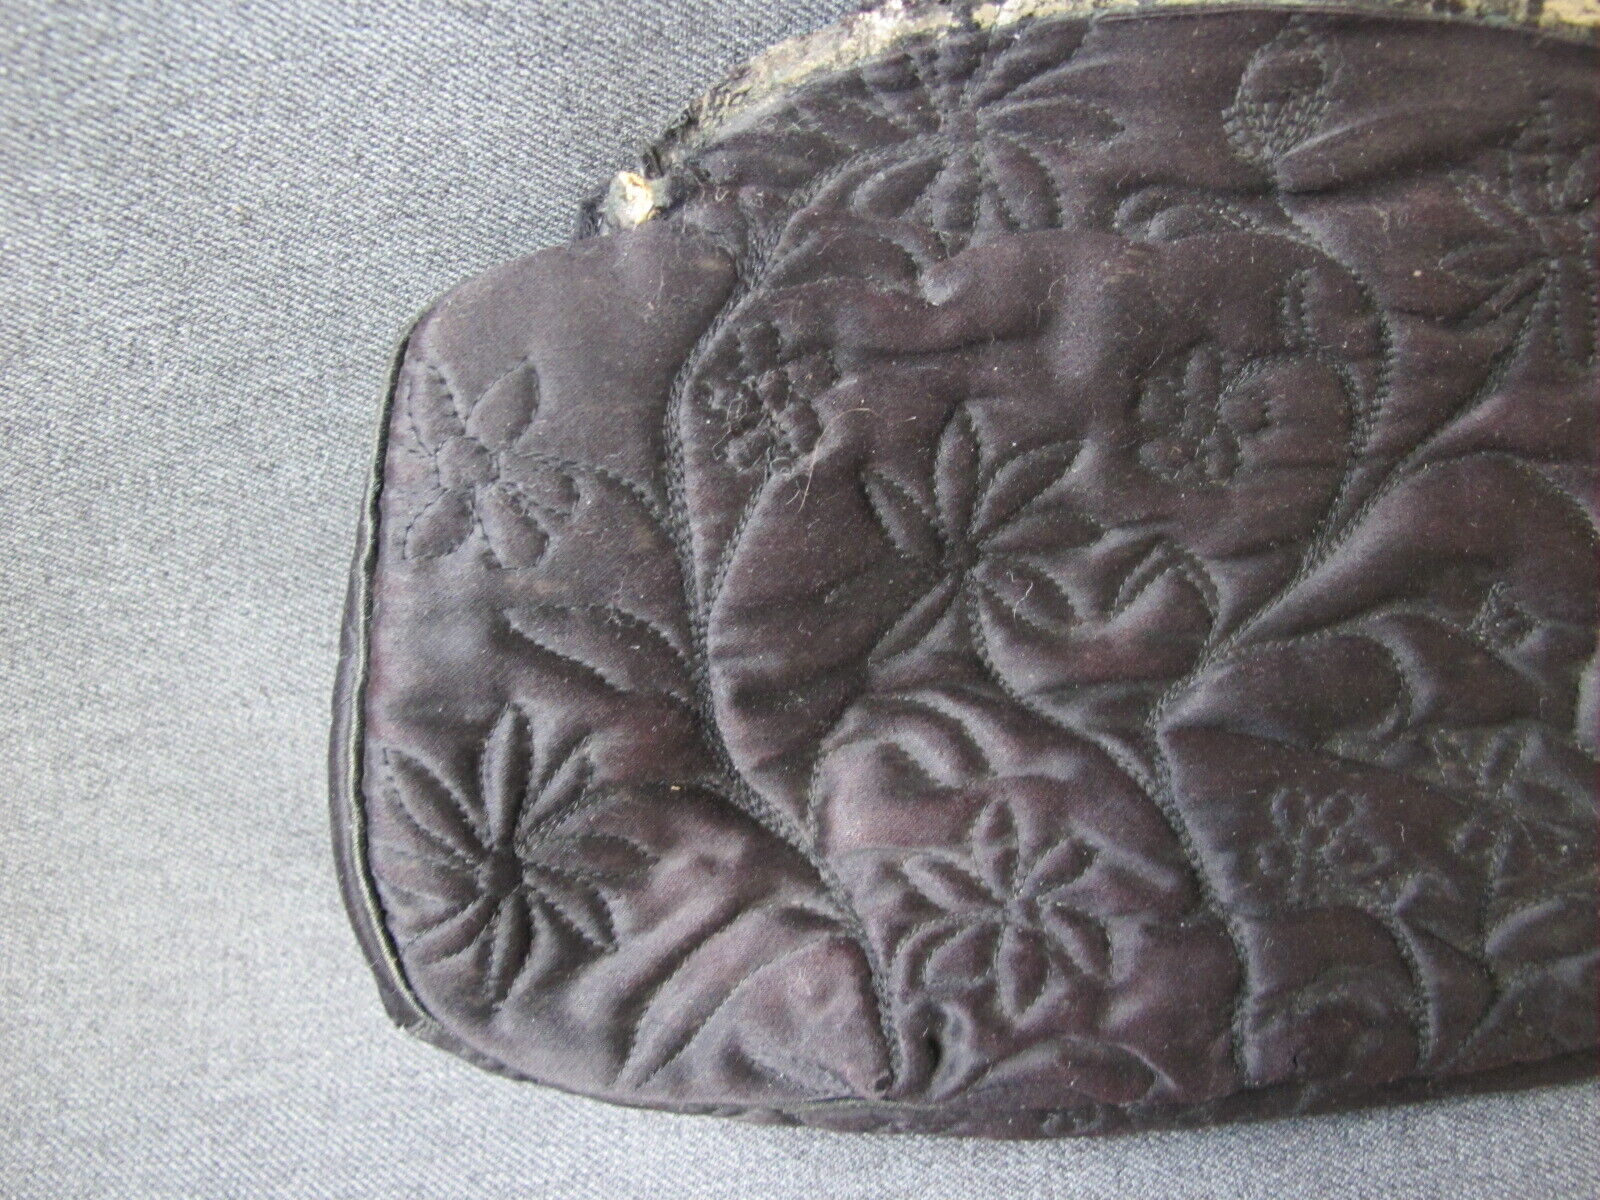 Antique Embroidery Double Sided Flowers Leaves Black Silk Bag For Purse Repurp - $4.99